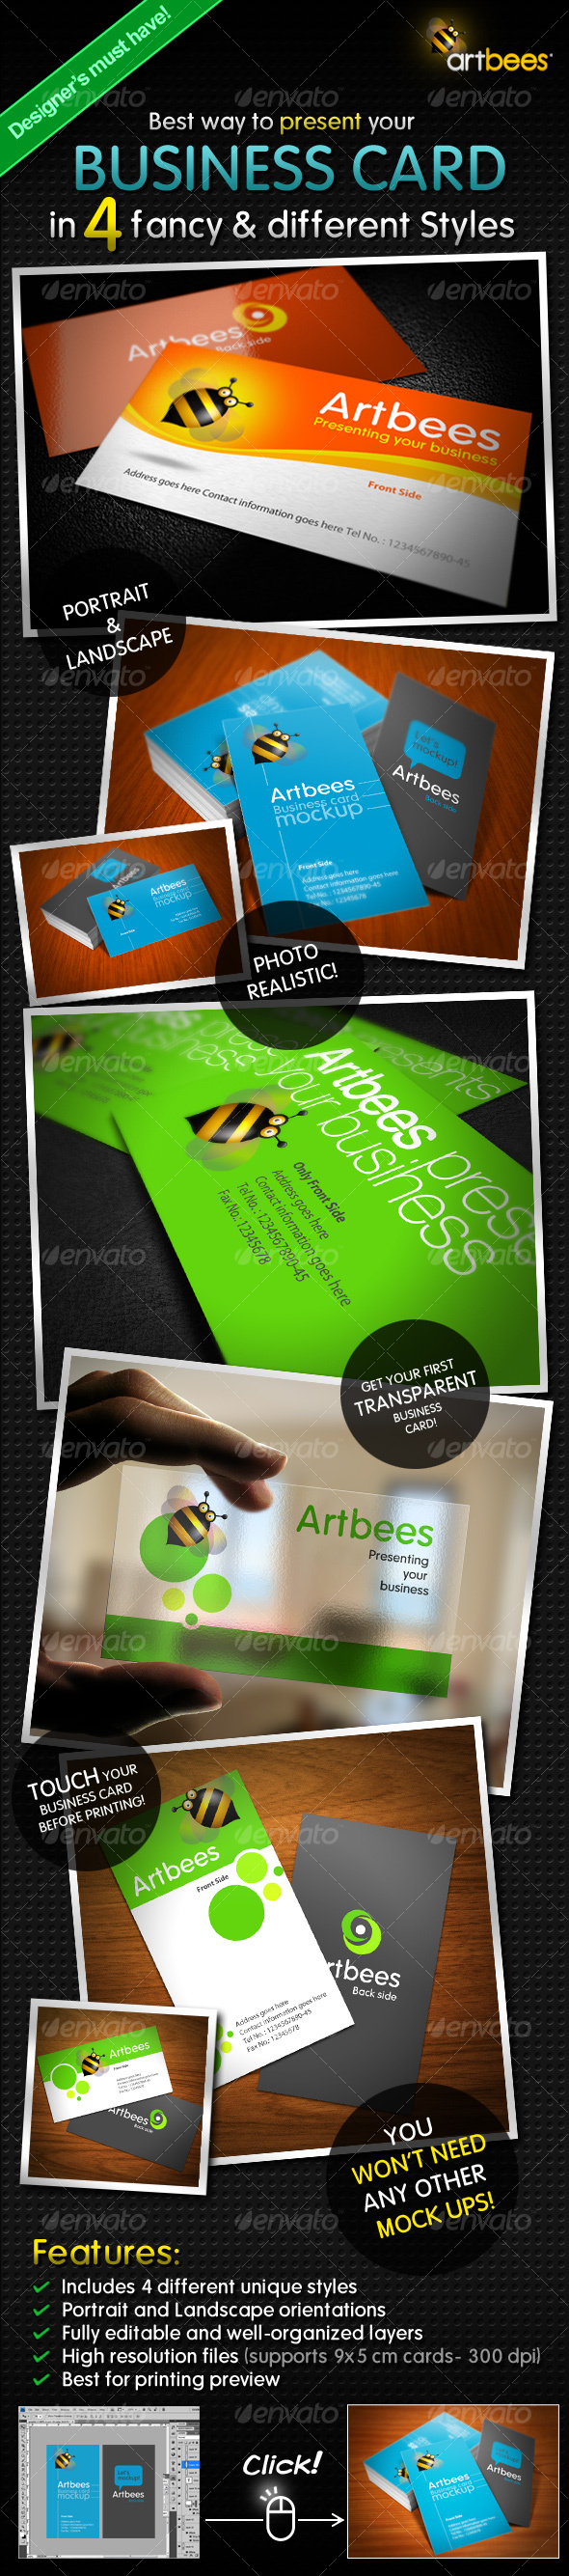 Great Business Card Mock-up Pack 4 Styles